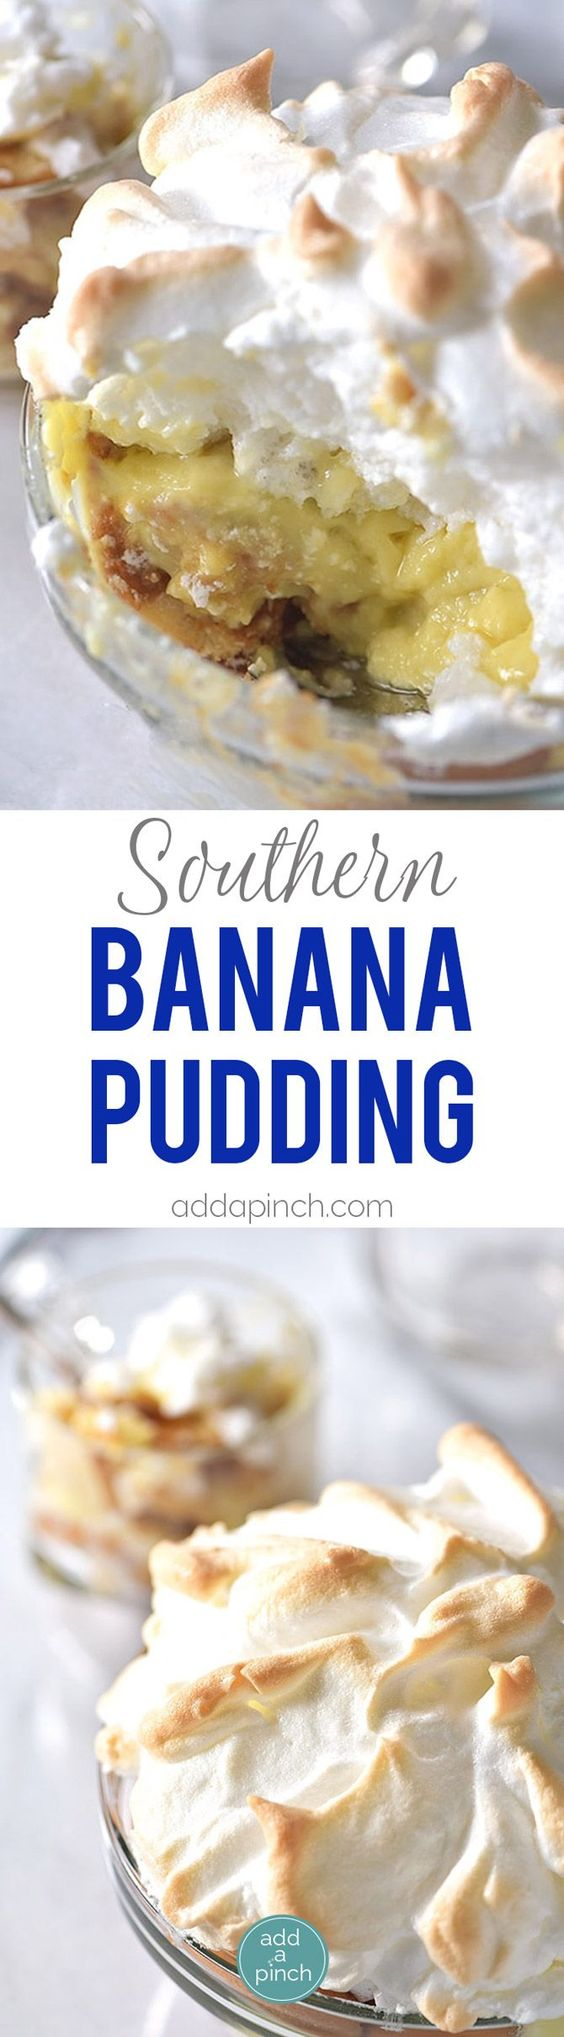 Southern Banana Pudding Recipe - This banana pudding recipe makes a classic, Southern dessert. An heirloom family recipe, this homemade banana pudding is an essential part of so many holidays and celebrations! // addapinch.com